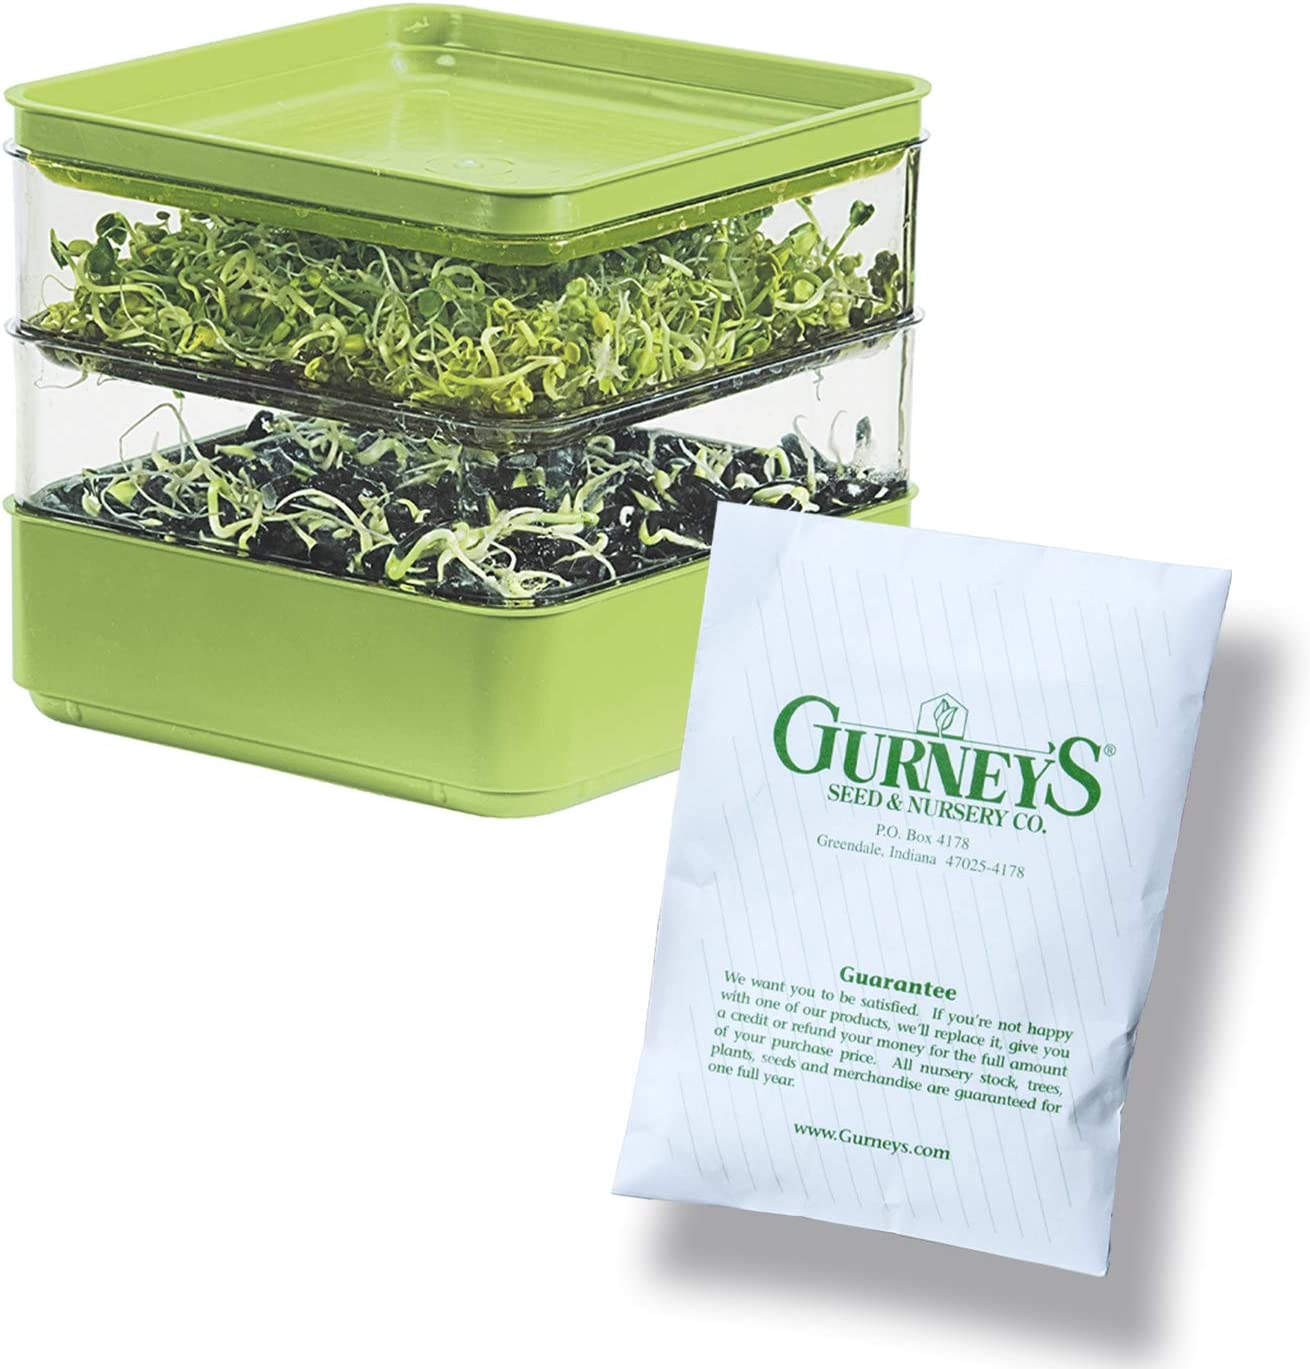 Gardens Alive! Two-Tiered Seed Sprouter with Seeds Kit - Ideal Gift for The Indoor Sprout Growing Enthusiast or Someone who Loves Homemade Healthy Snacks!